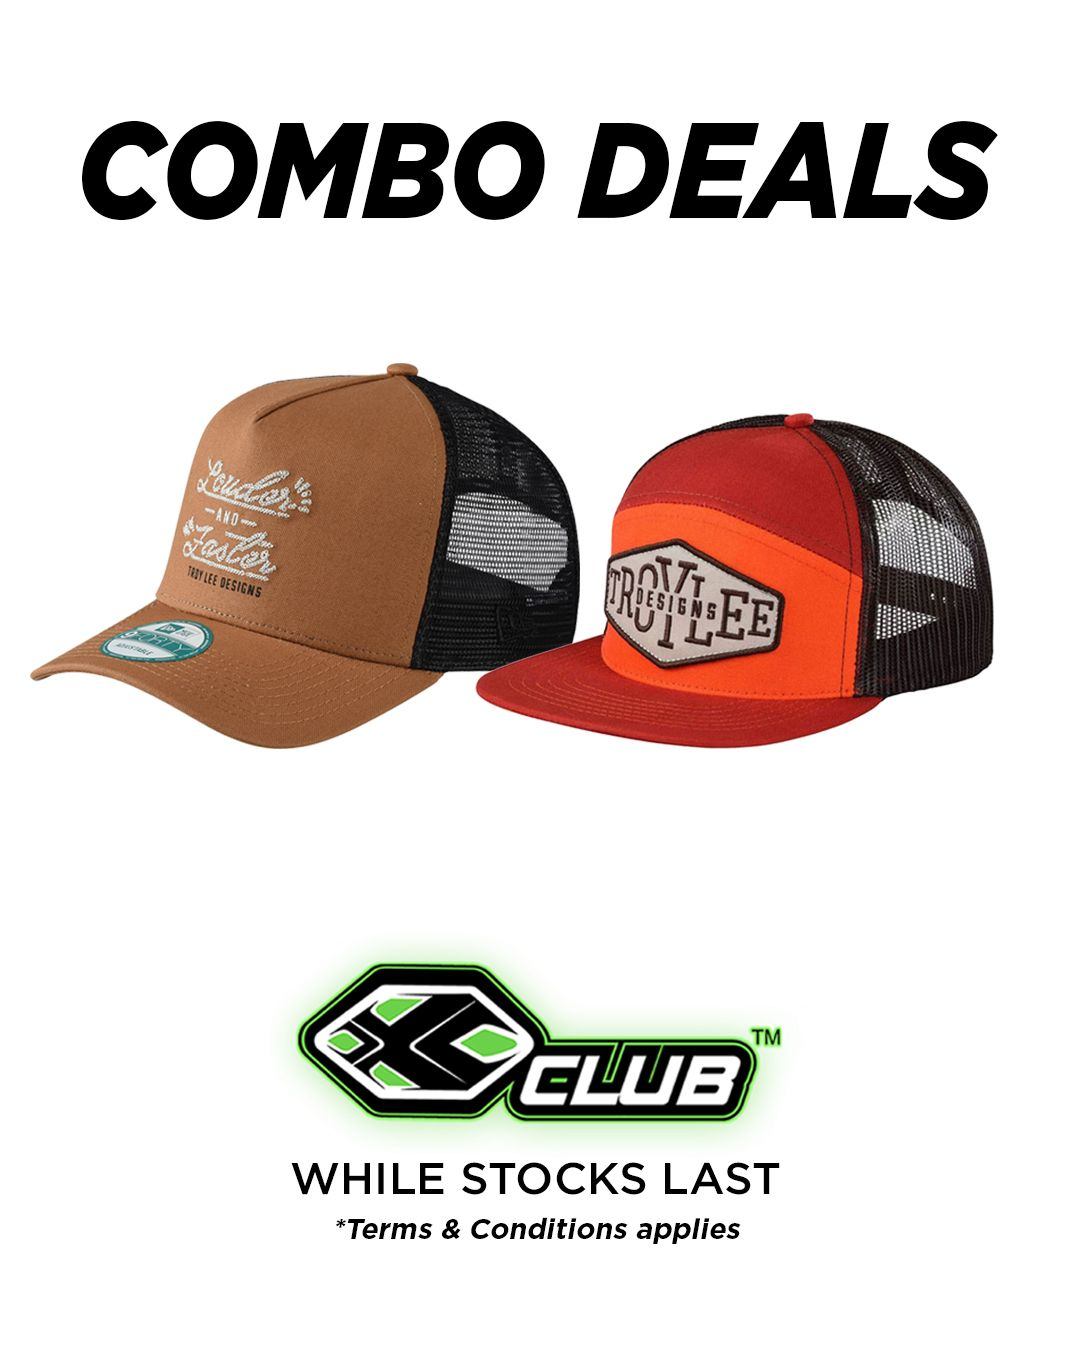 Combo Deals At Xclub Stores While Stocks Last Terms Conditions